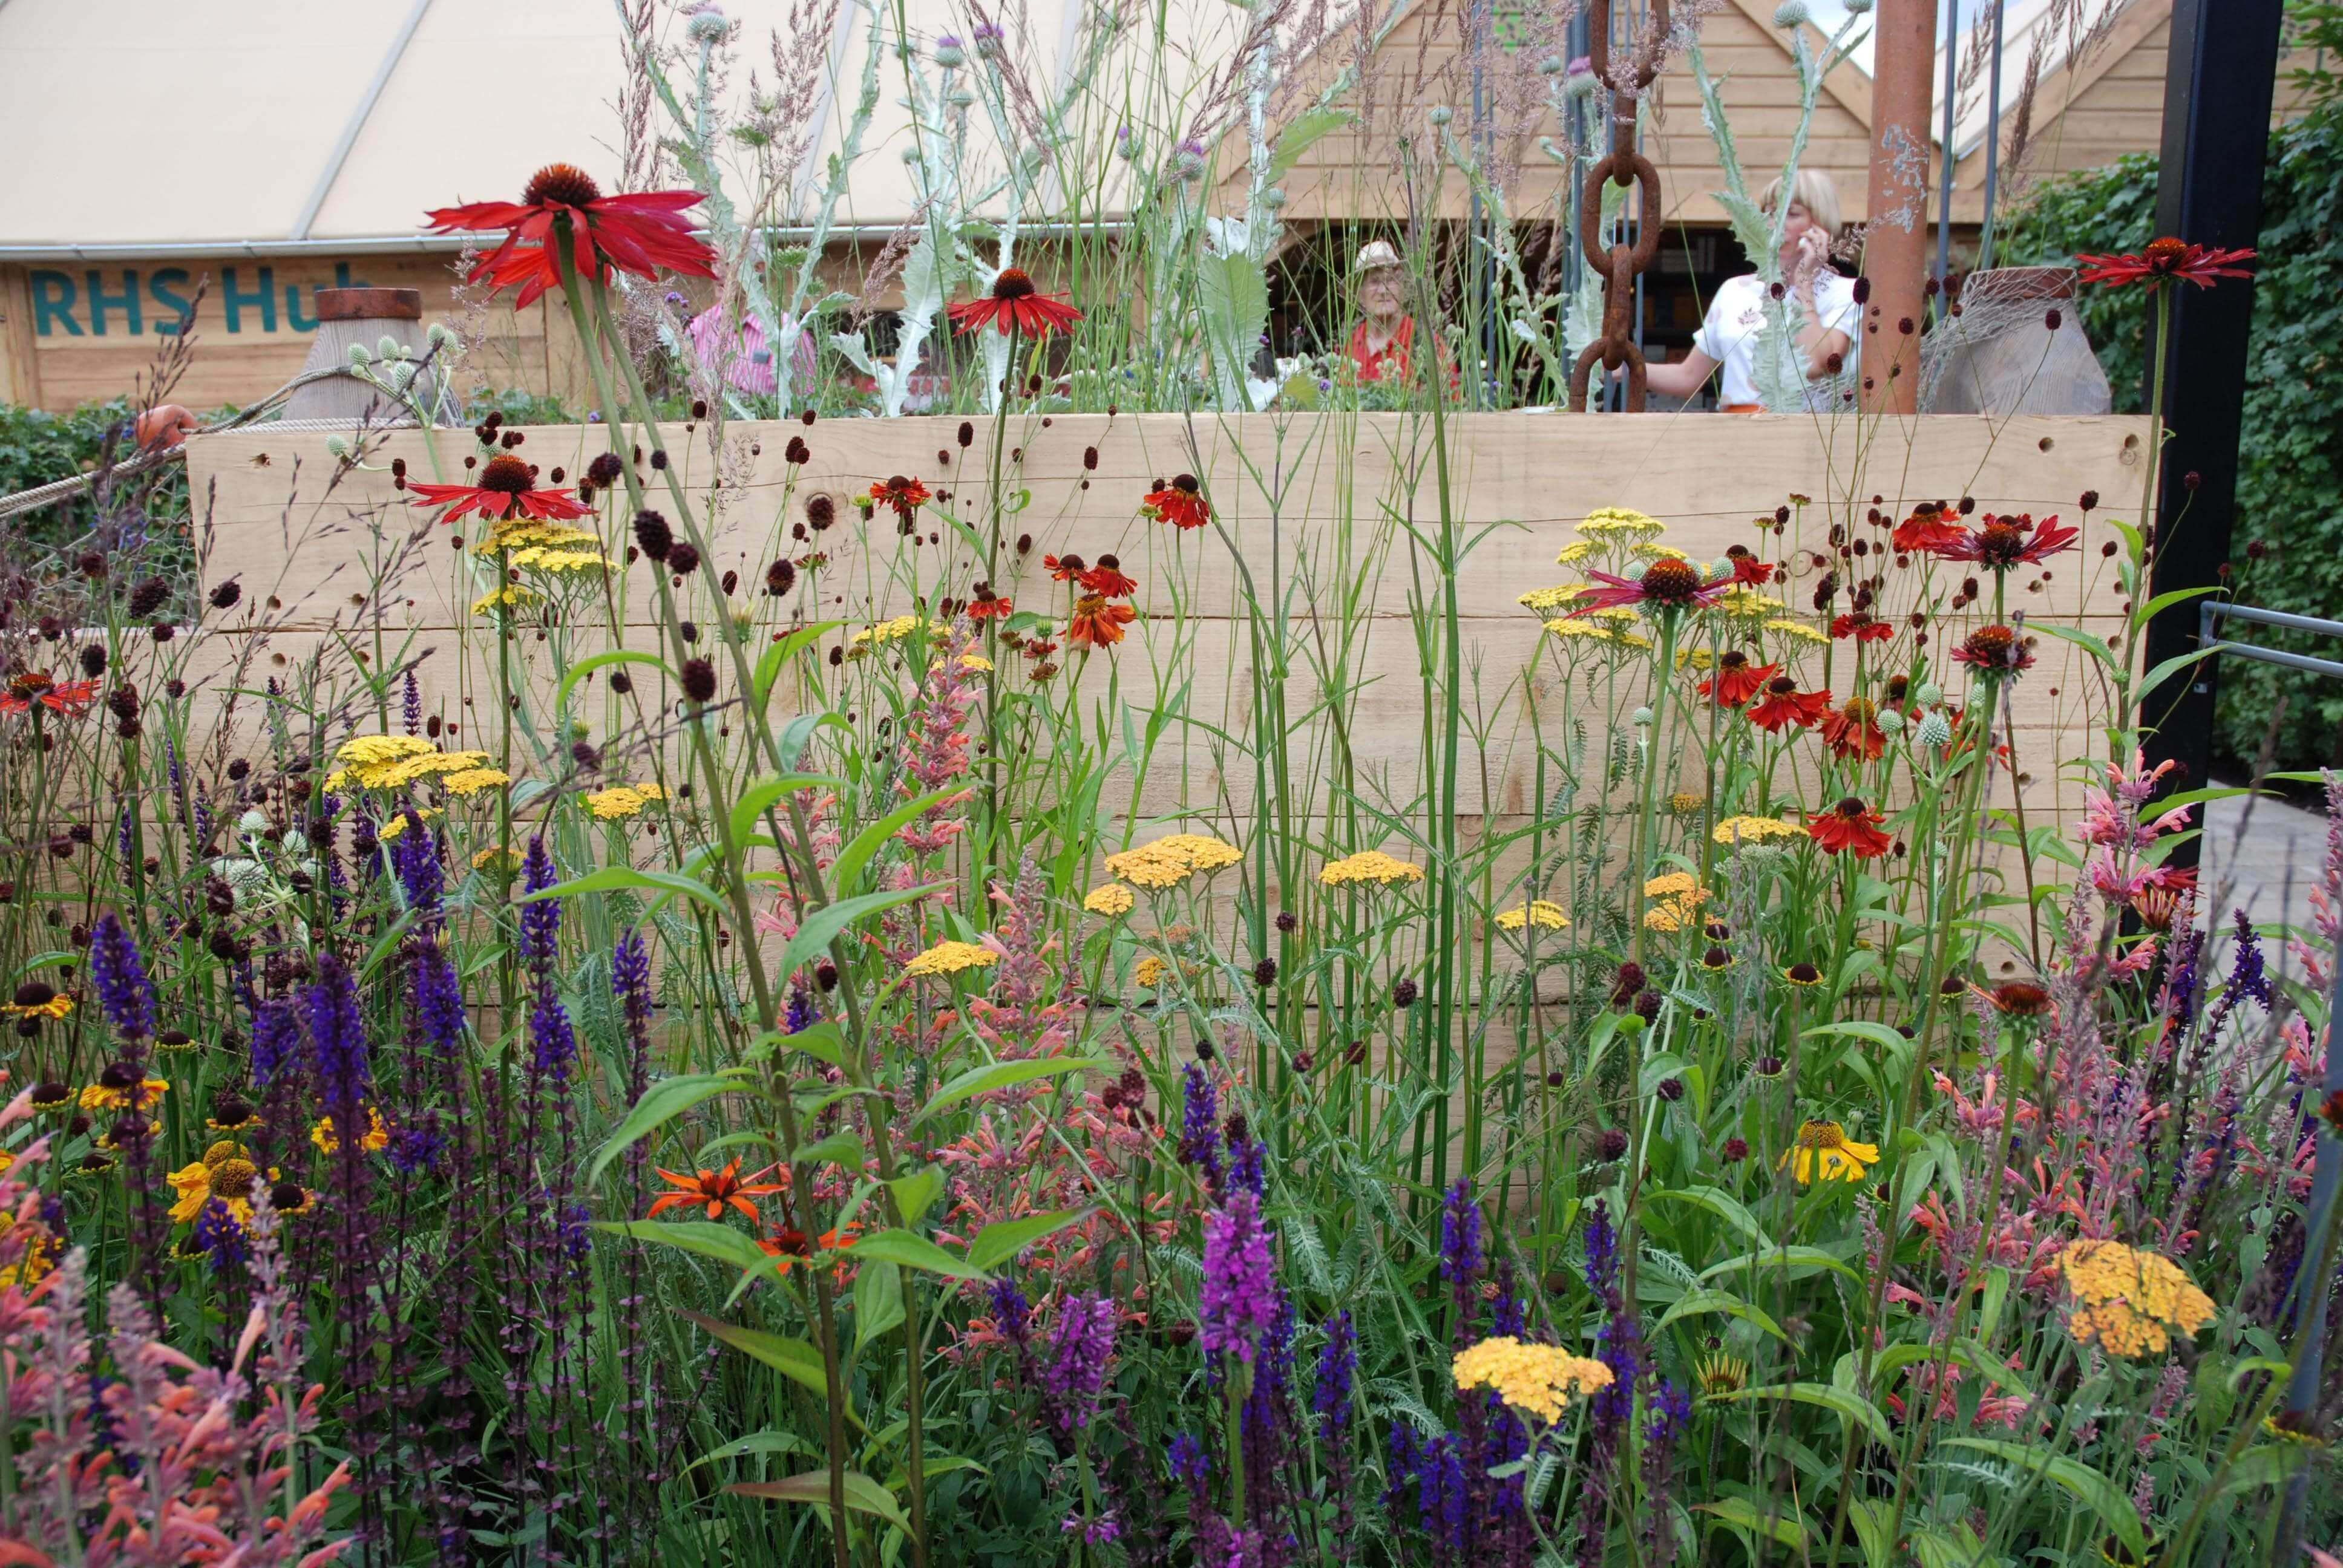 sangua sorba and echinacea in Bristol garden